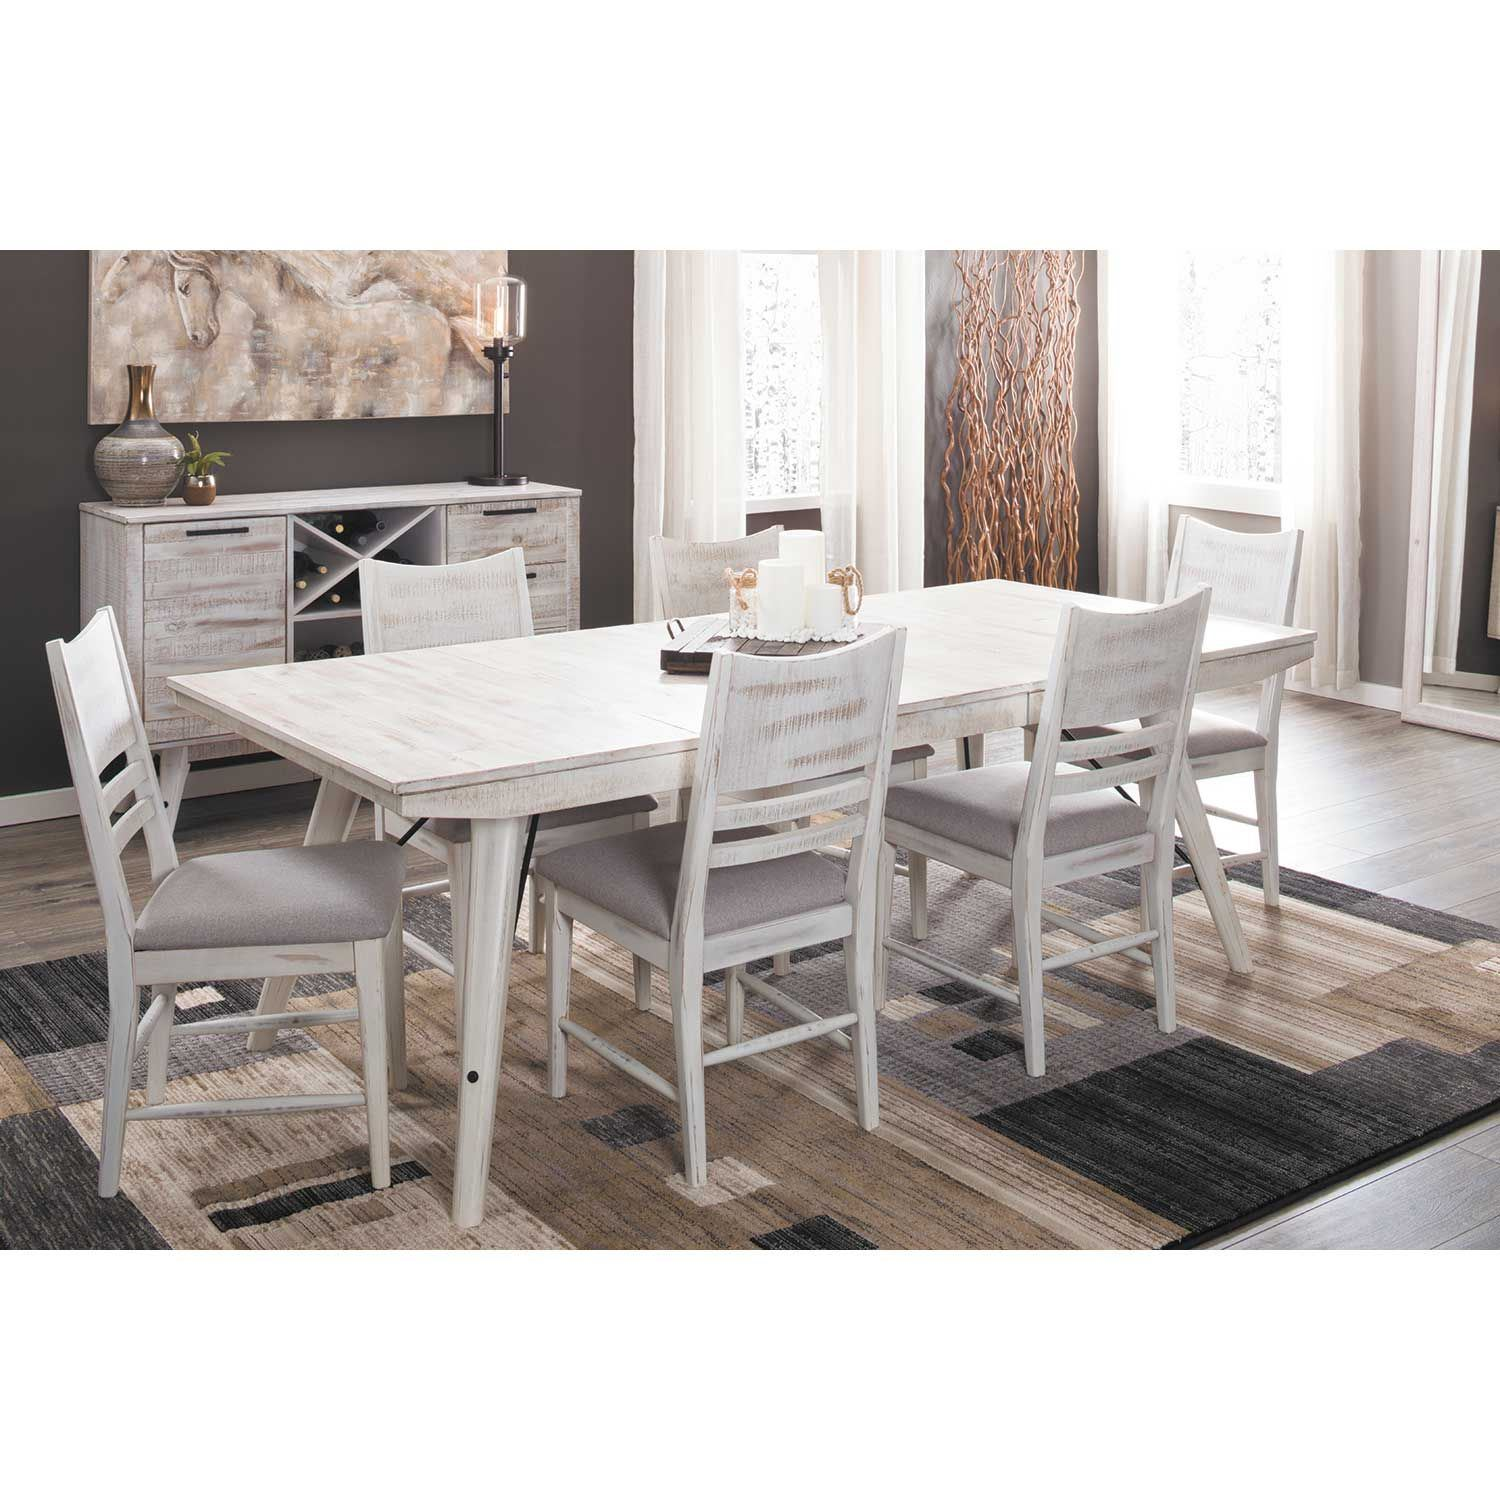 Picture of Modern Rustic Trestle Table